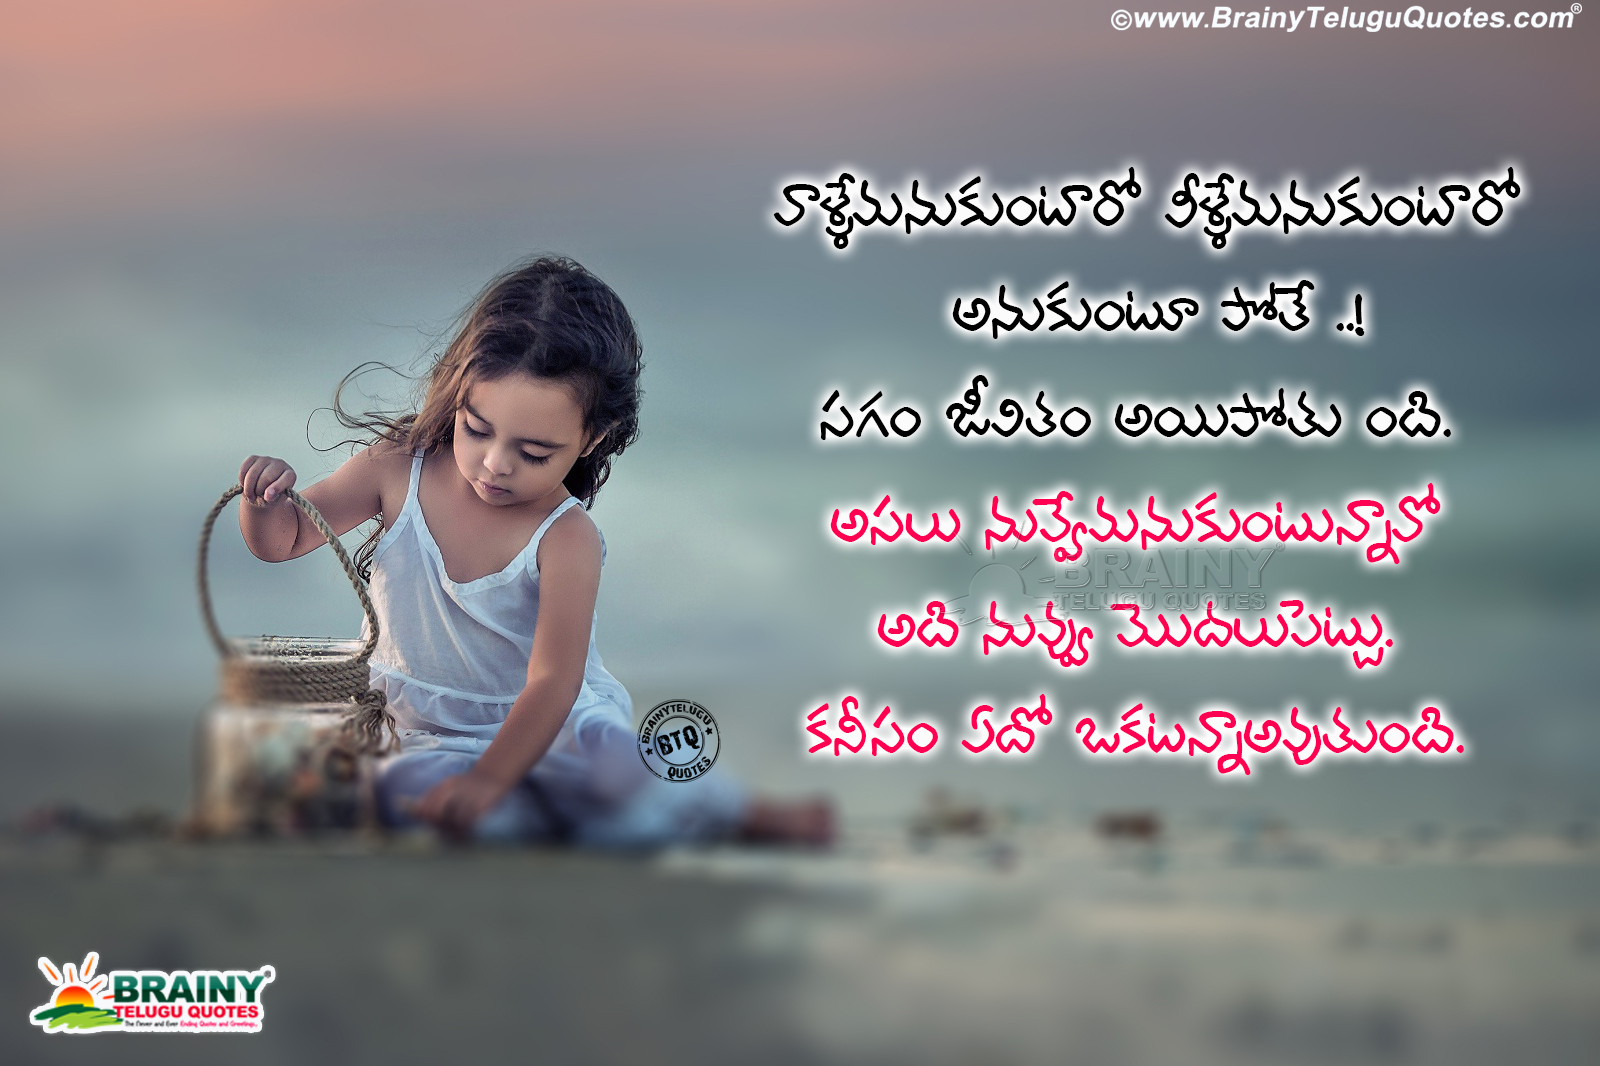 Snap Life Changing Quotes With Images In Telugu Matatarantula Photos